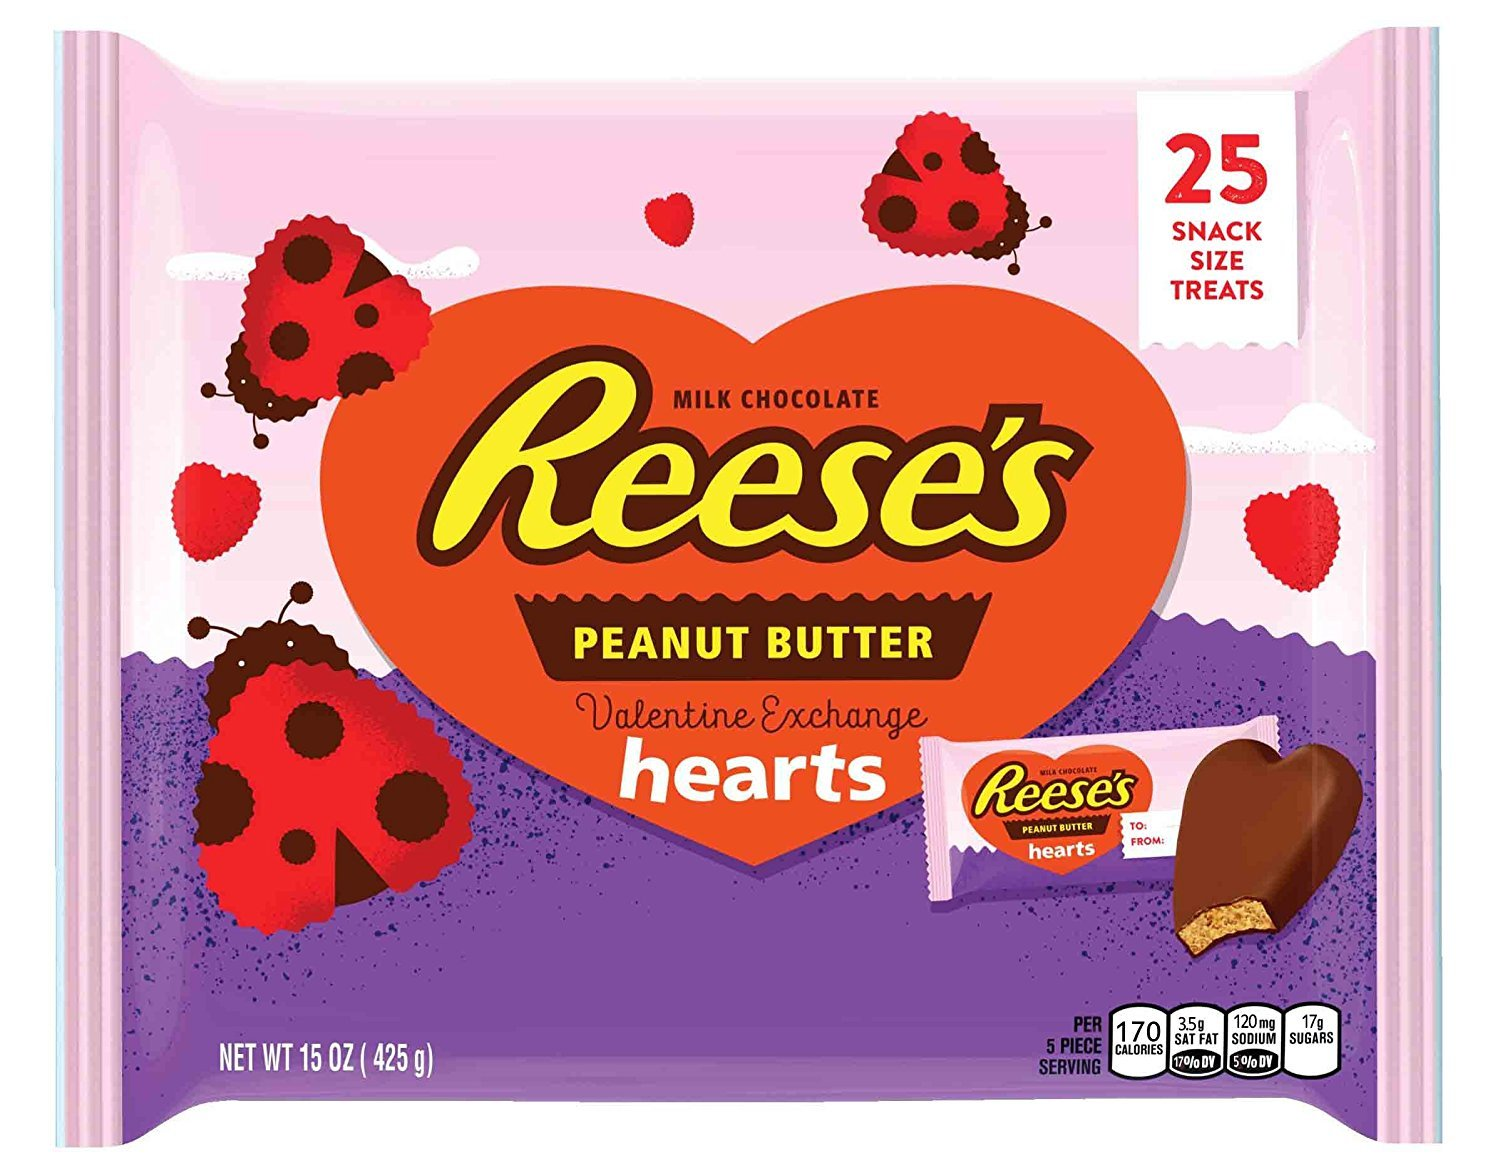 REESE'S Peanut Butter Hearts Valentine Exchange Snack Size